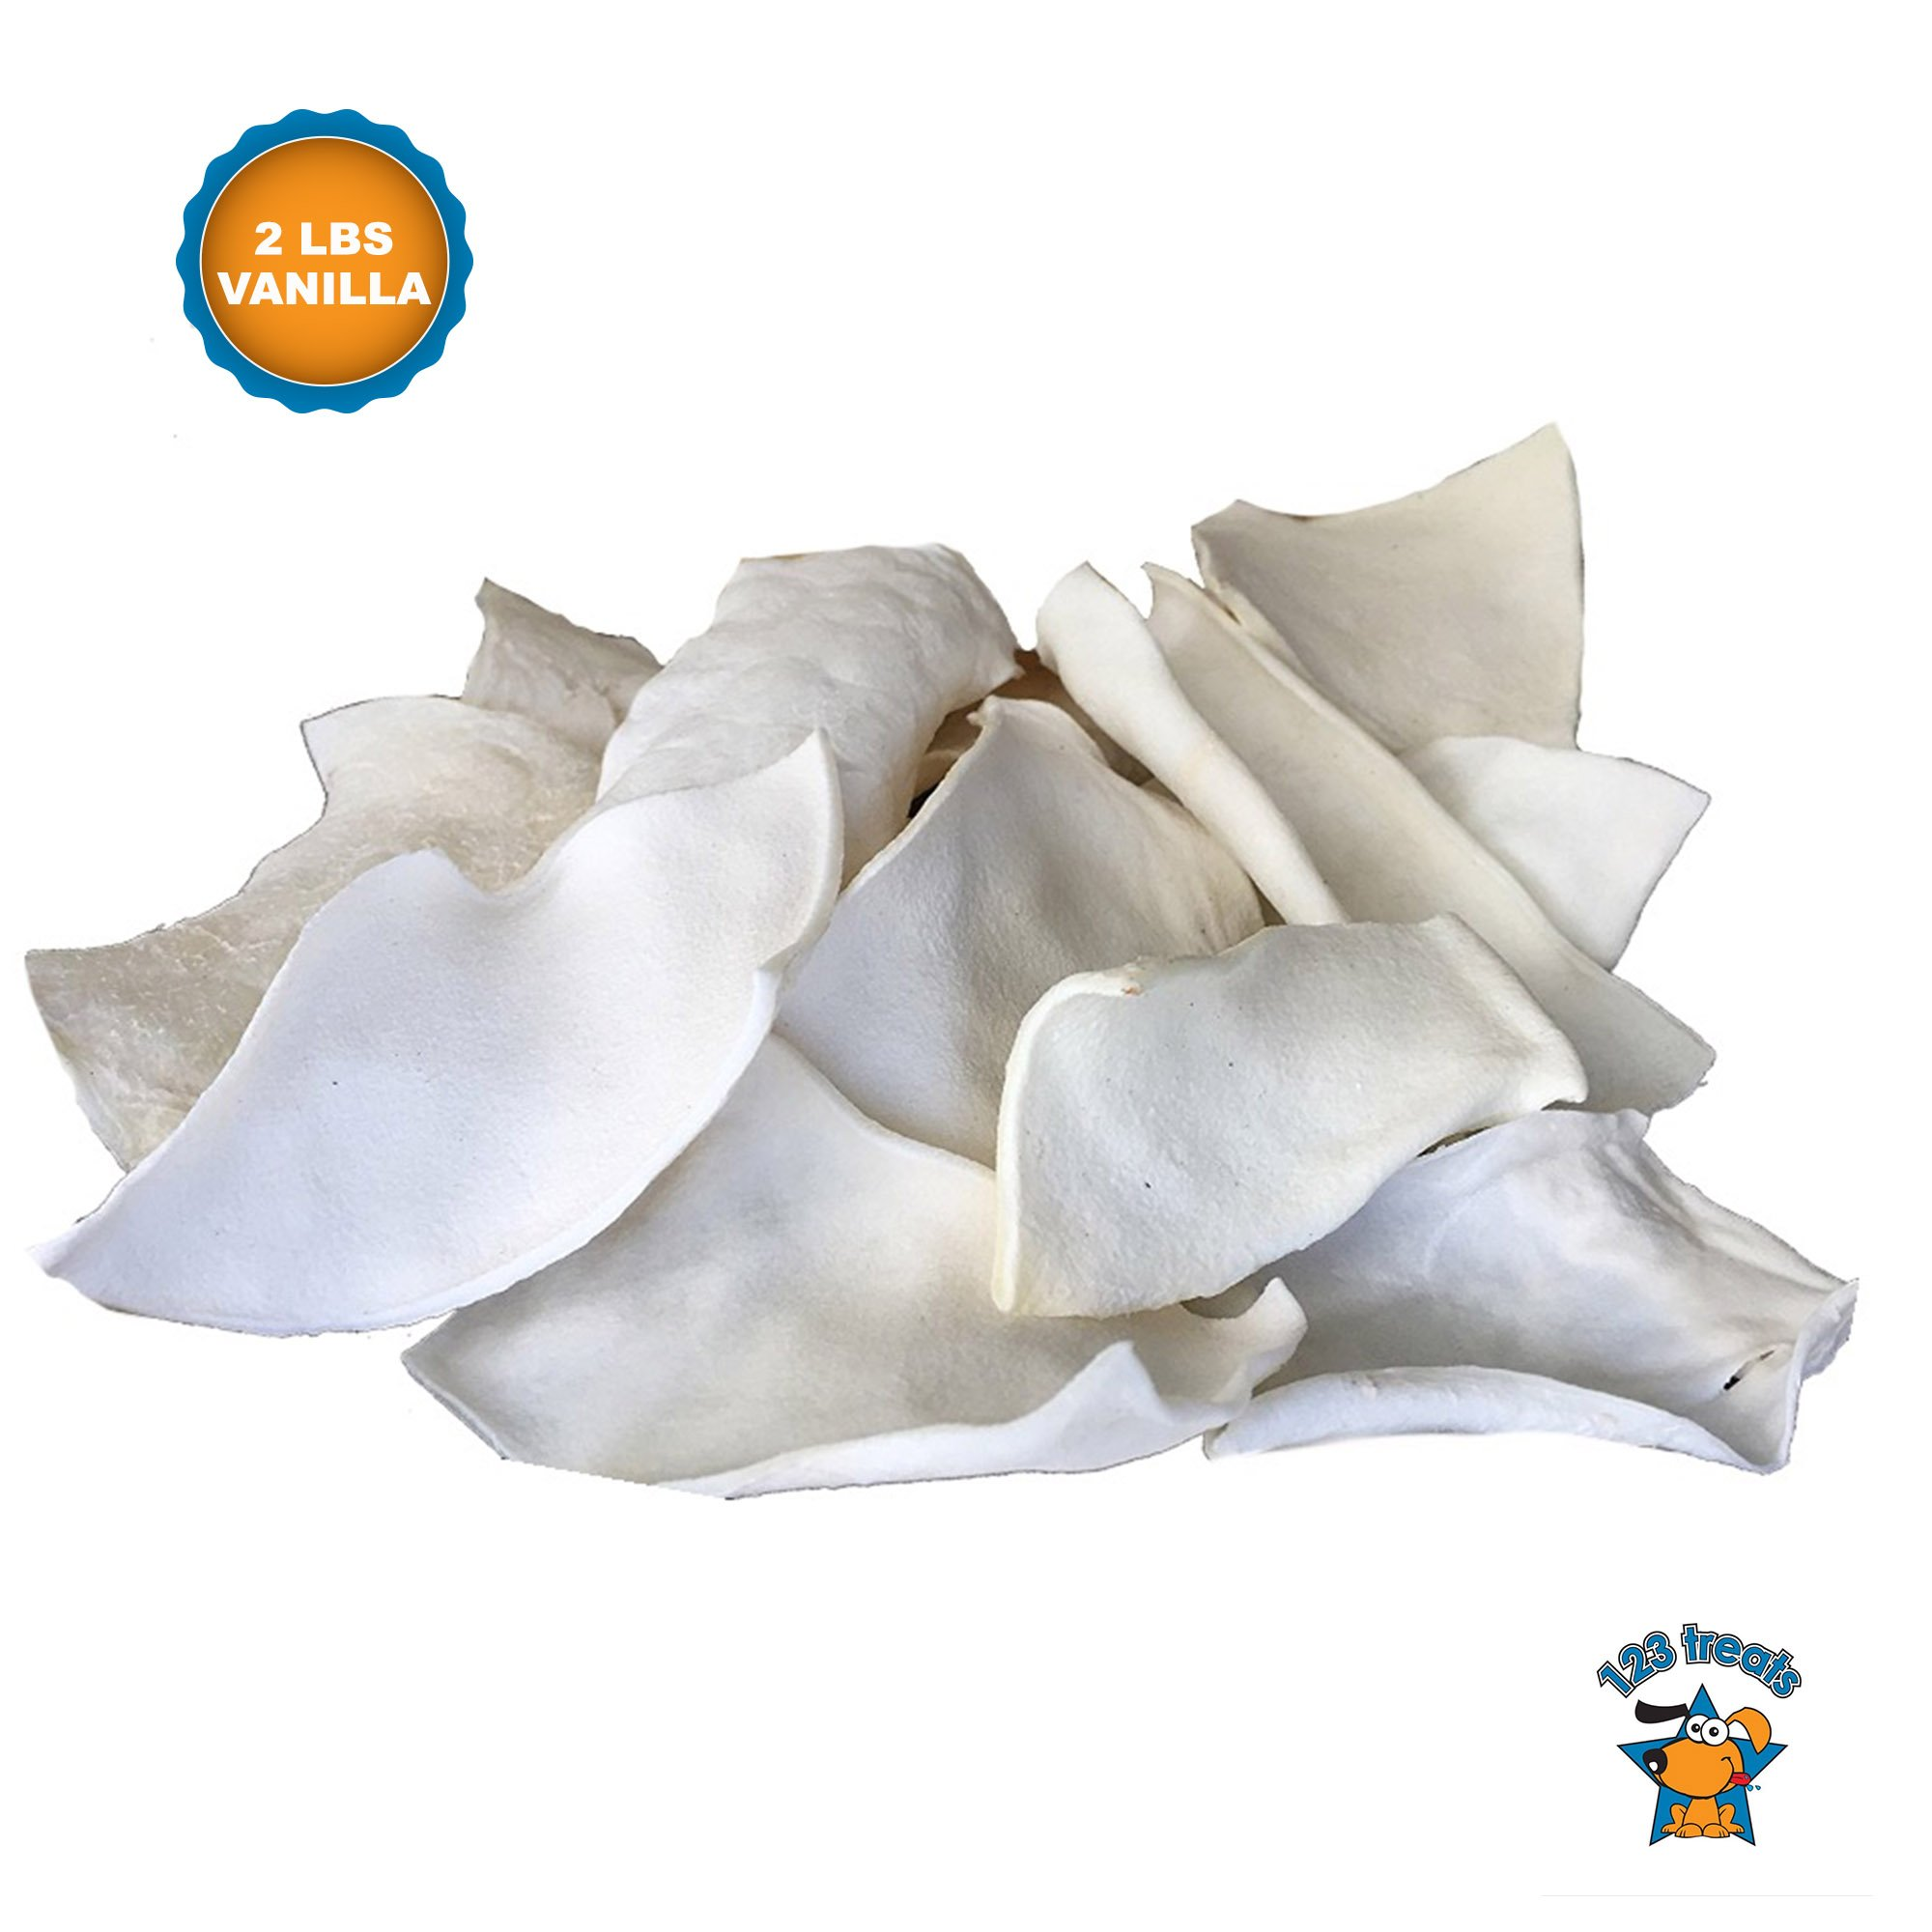 123 Treats | Rawhide Chips Vanilla Flavor (2 Pounds) 100% Natural Rawhide Chews for Dogs